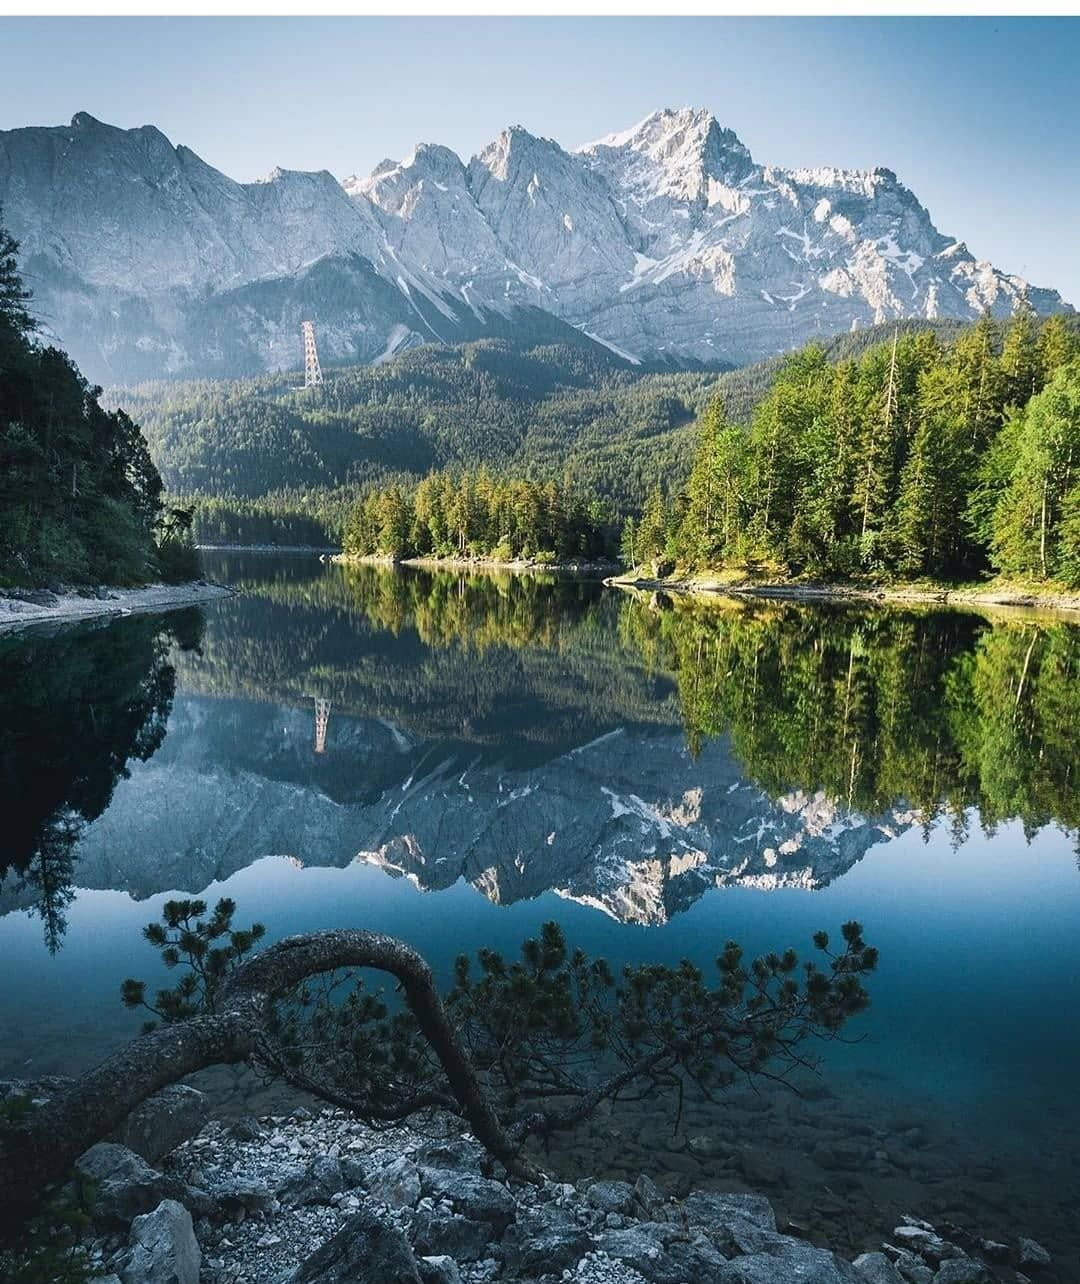 Germany Germany Eibsee Bayern Nature Landscape Landscapephotography Mountains Trees Reflections Sunny Sunnyday Magic In 2020 Eibsee Zugspitze Wandern Zugspitze